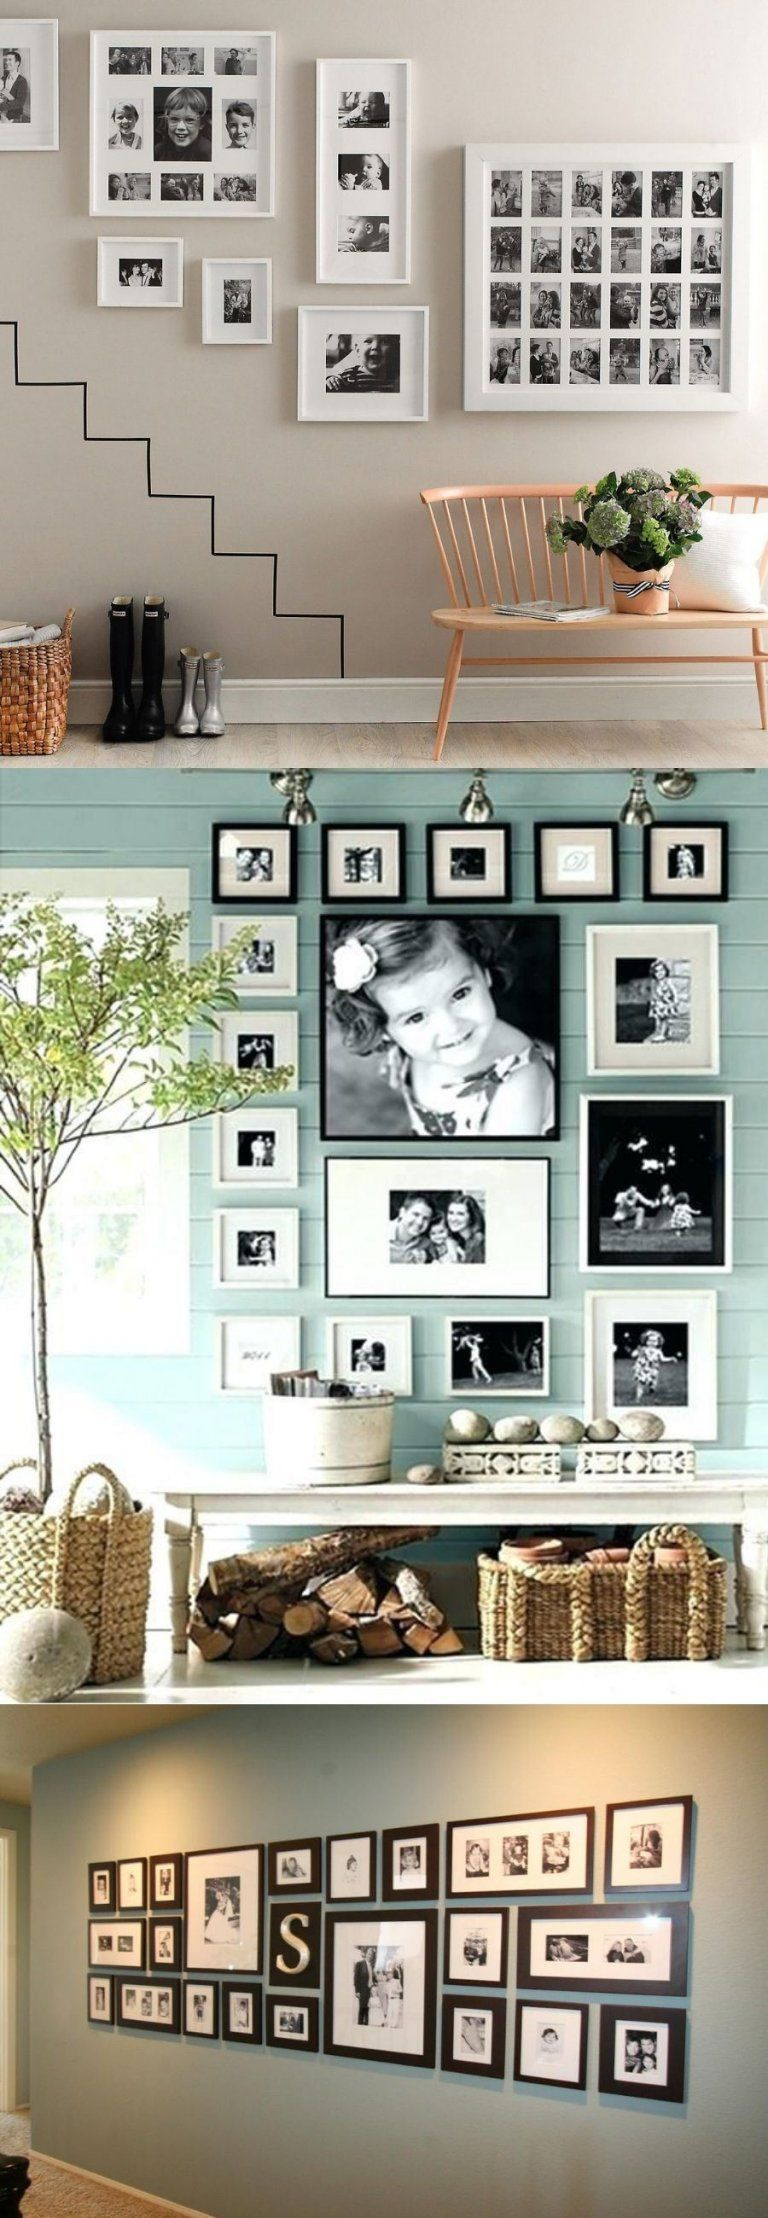 15 photo collage ideas easy ways to play with your photos